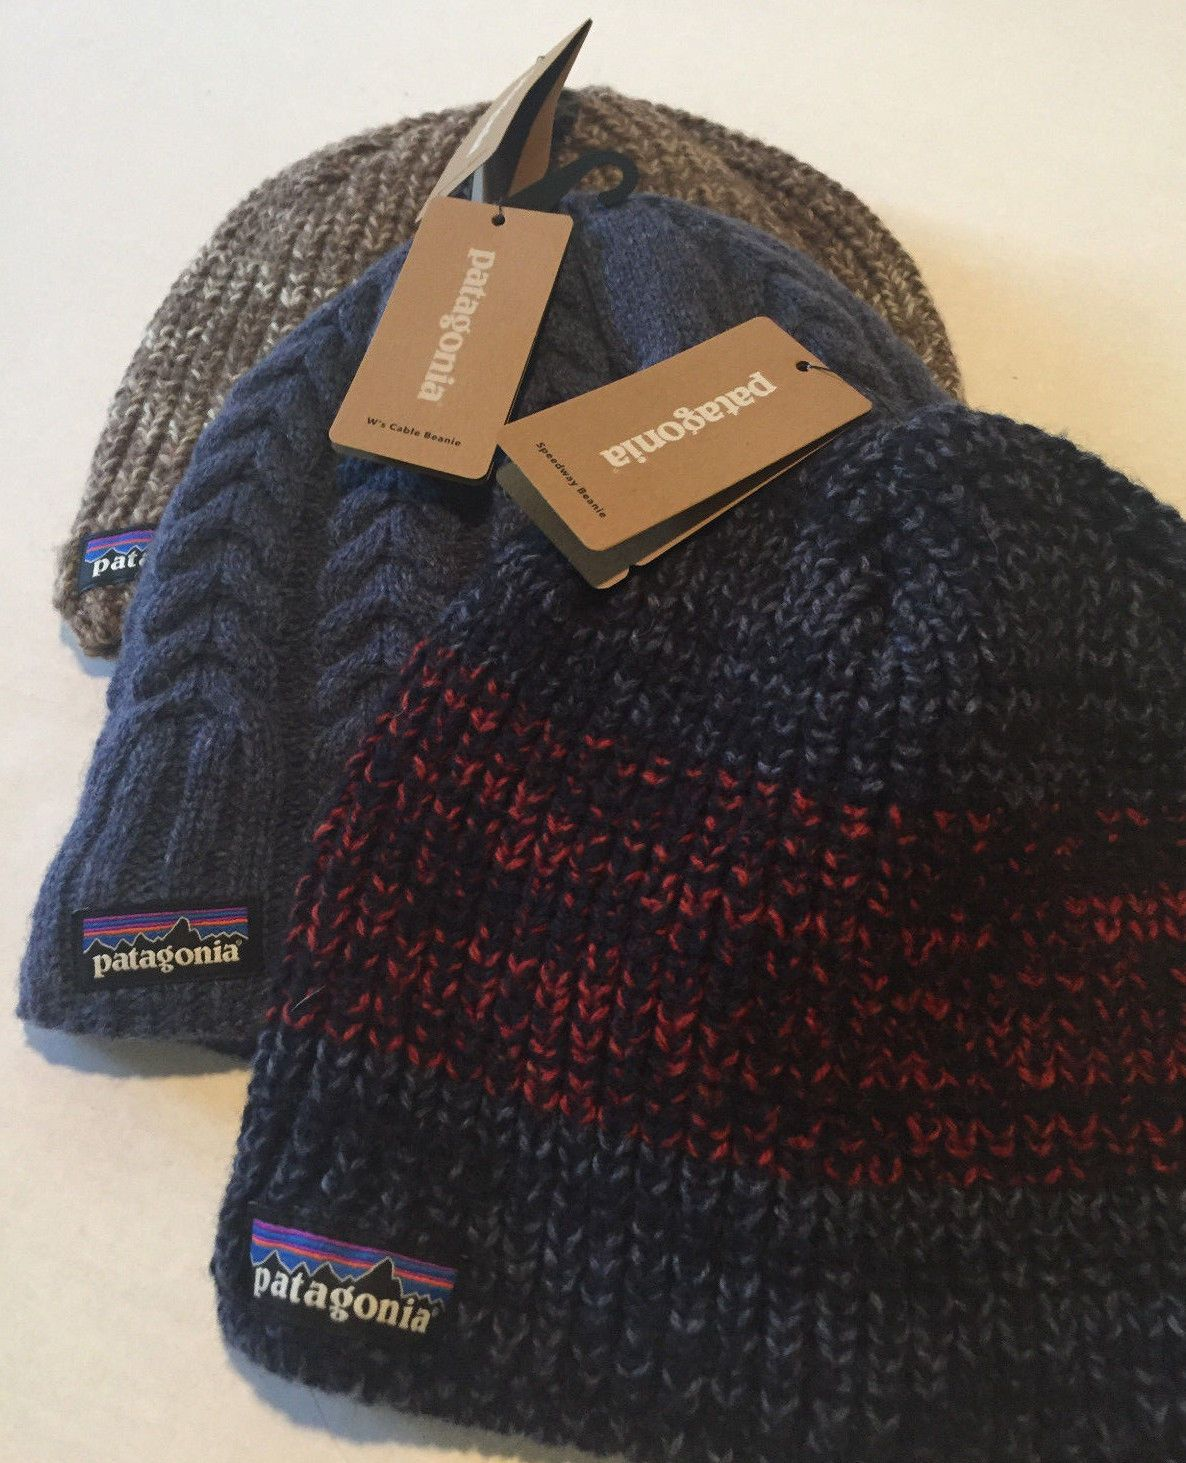 8a718ed9ea1e2 Hats and Headwear 62175  Patagonia Adult Speedway Beanies Nwt Assorted  Colors 70% Wool 25